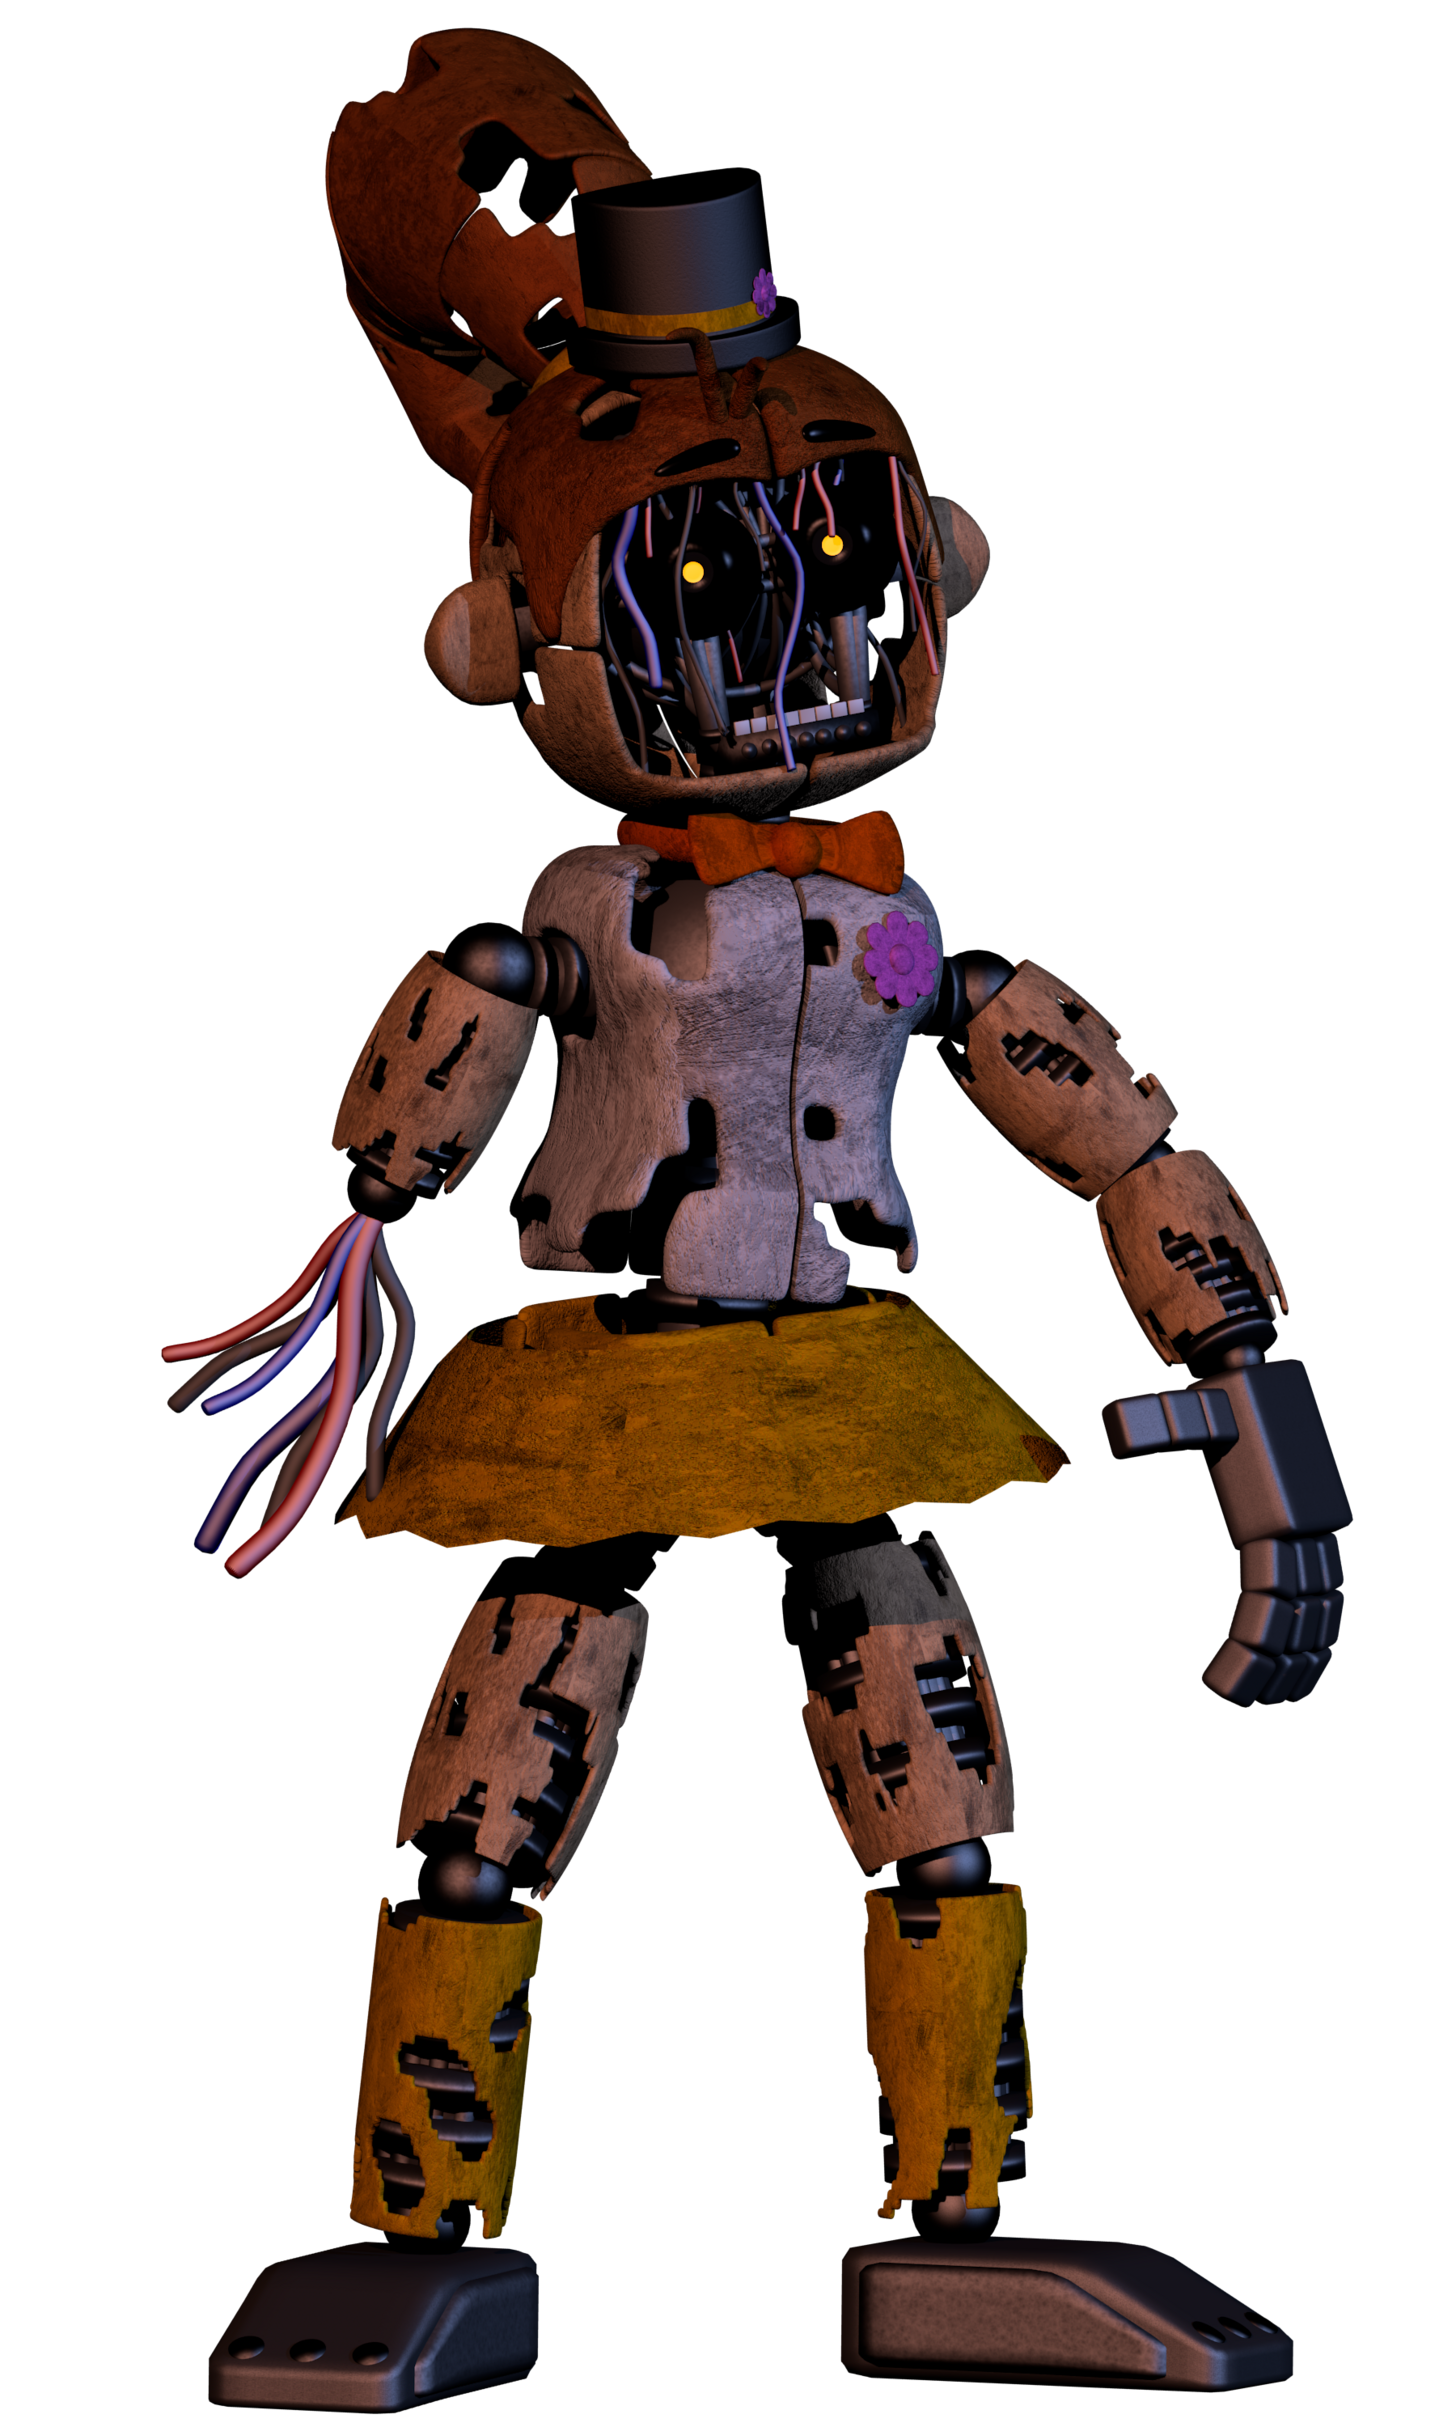 Transparent fnaf animatronic. Well since i am